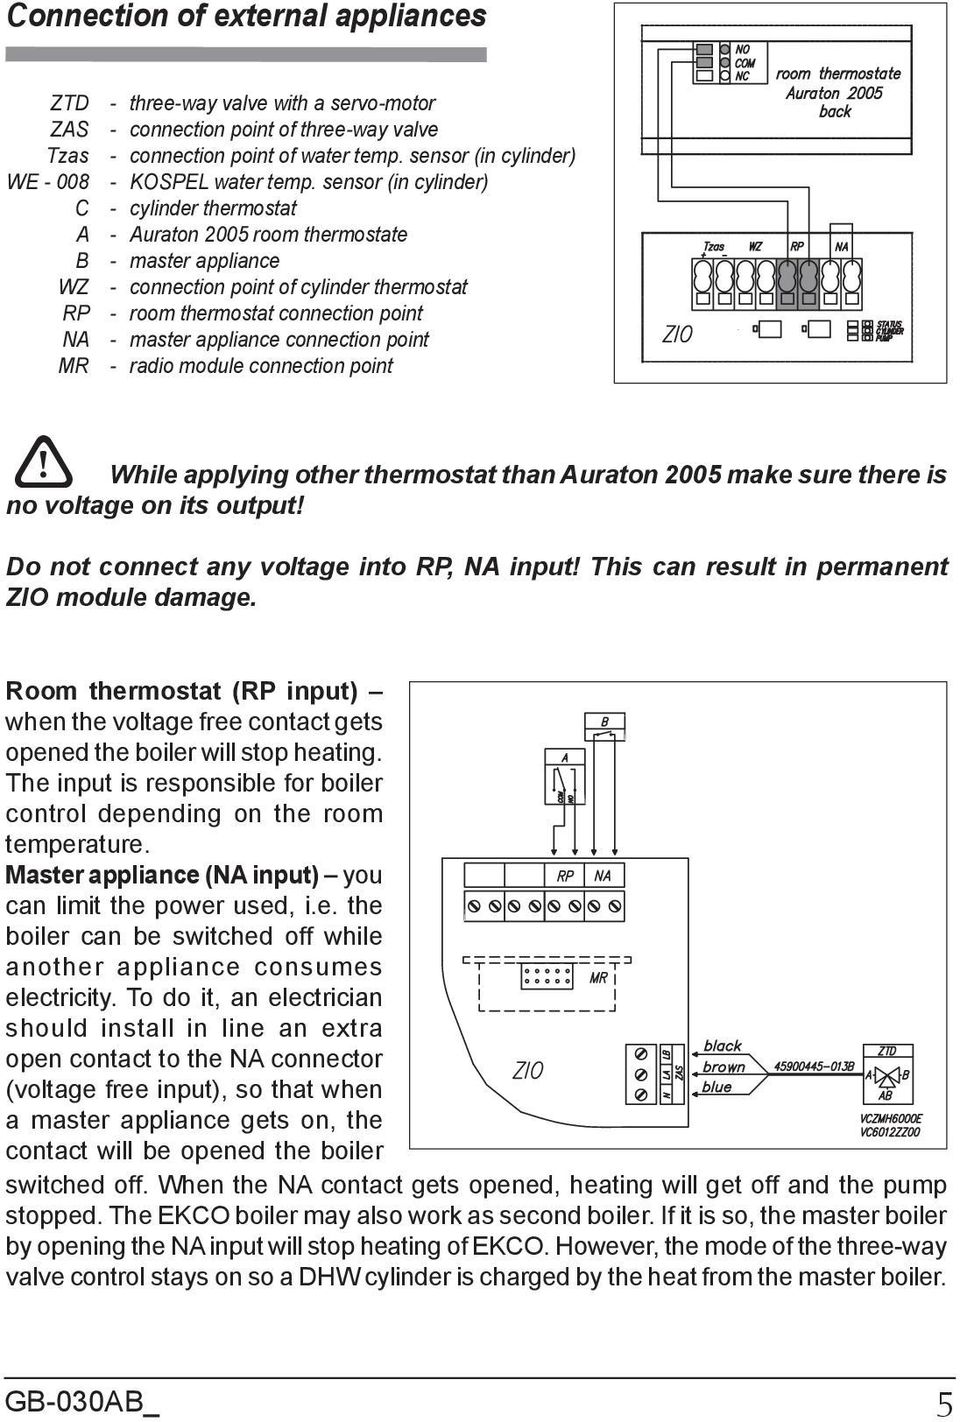 sensor (in cylinder) - cylinder thermostat - Auraton 2005 room thermostate - master appliance - connection point of cylinder thermostat - room thermostat connection point - master appliance